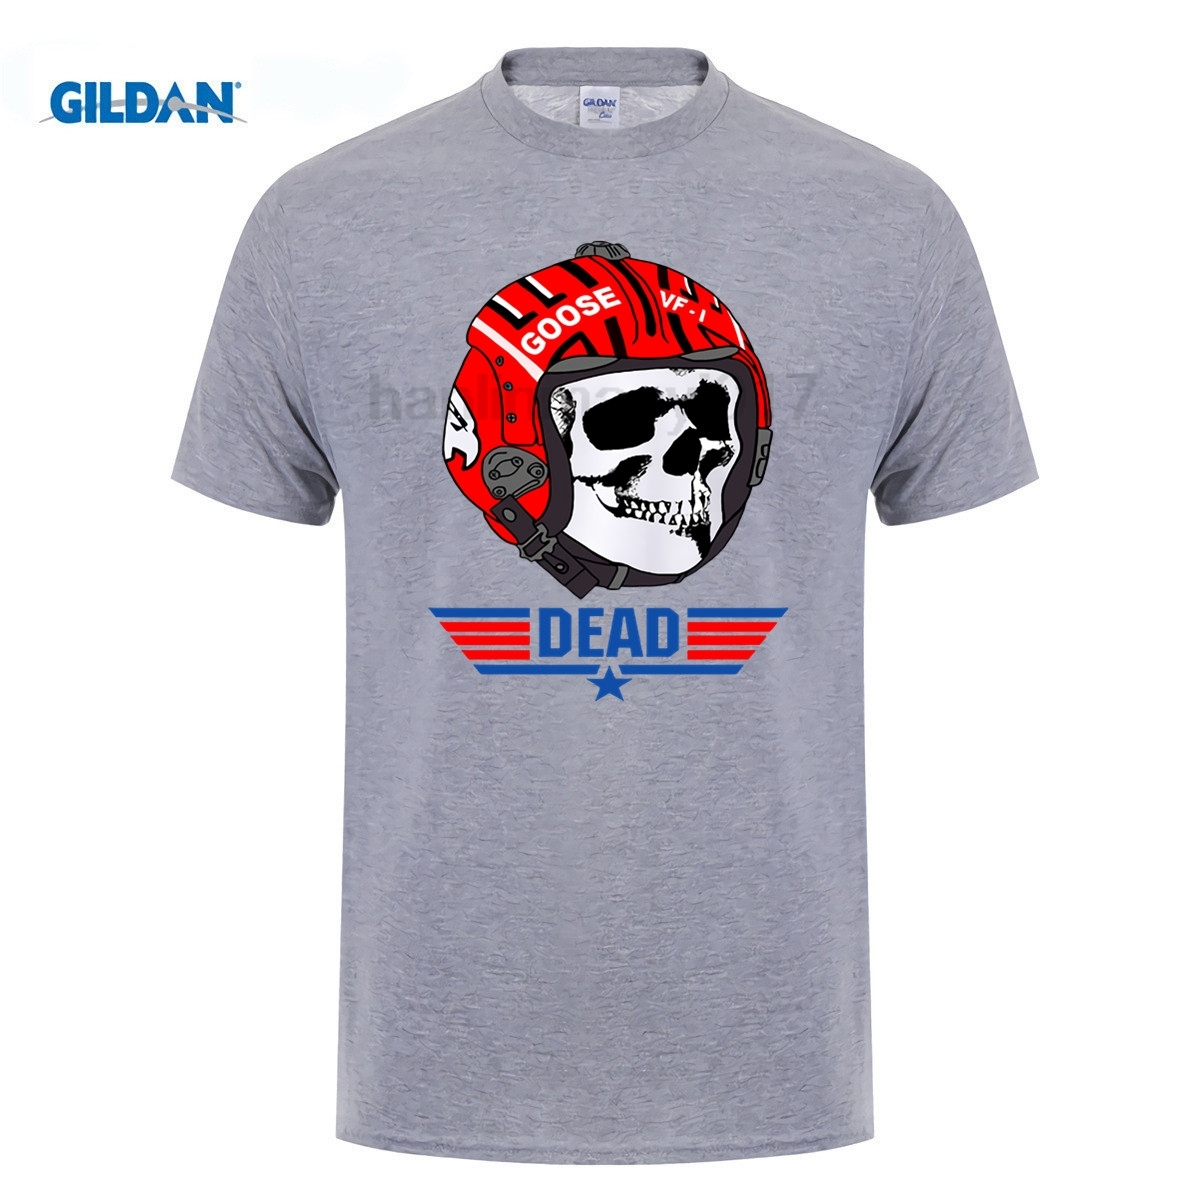 GILDAN mans t shirts brand summer maverick Short Sleeve T Shirts Man Clothing Shirt Top Tee Maverick Gun T-Shirt